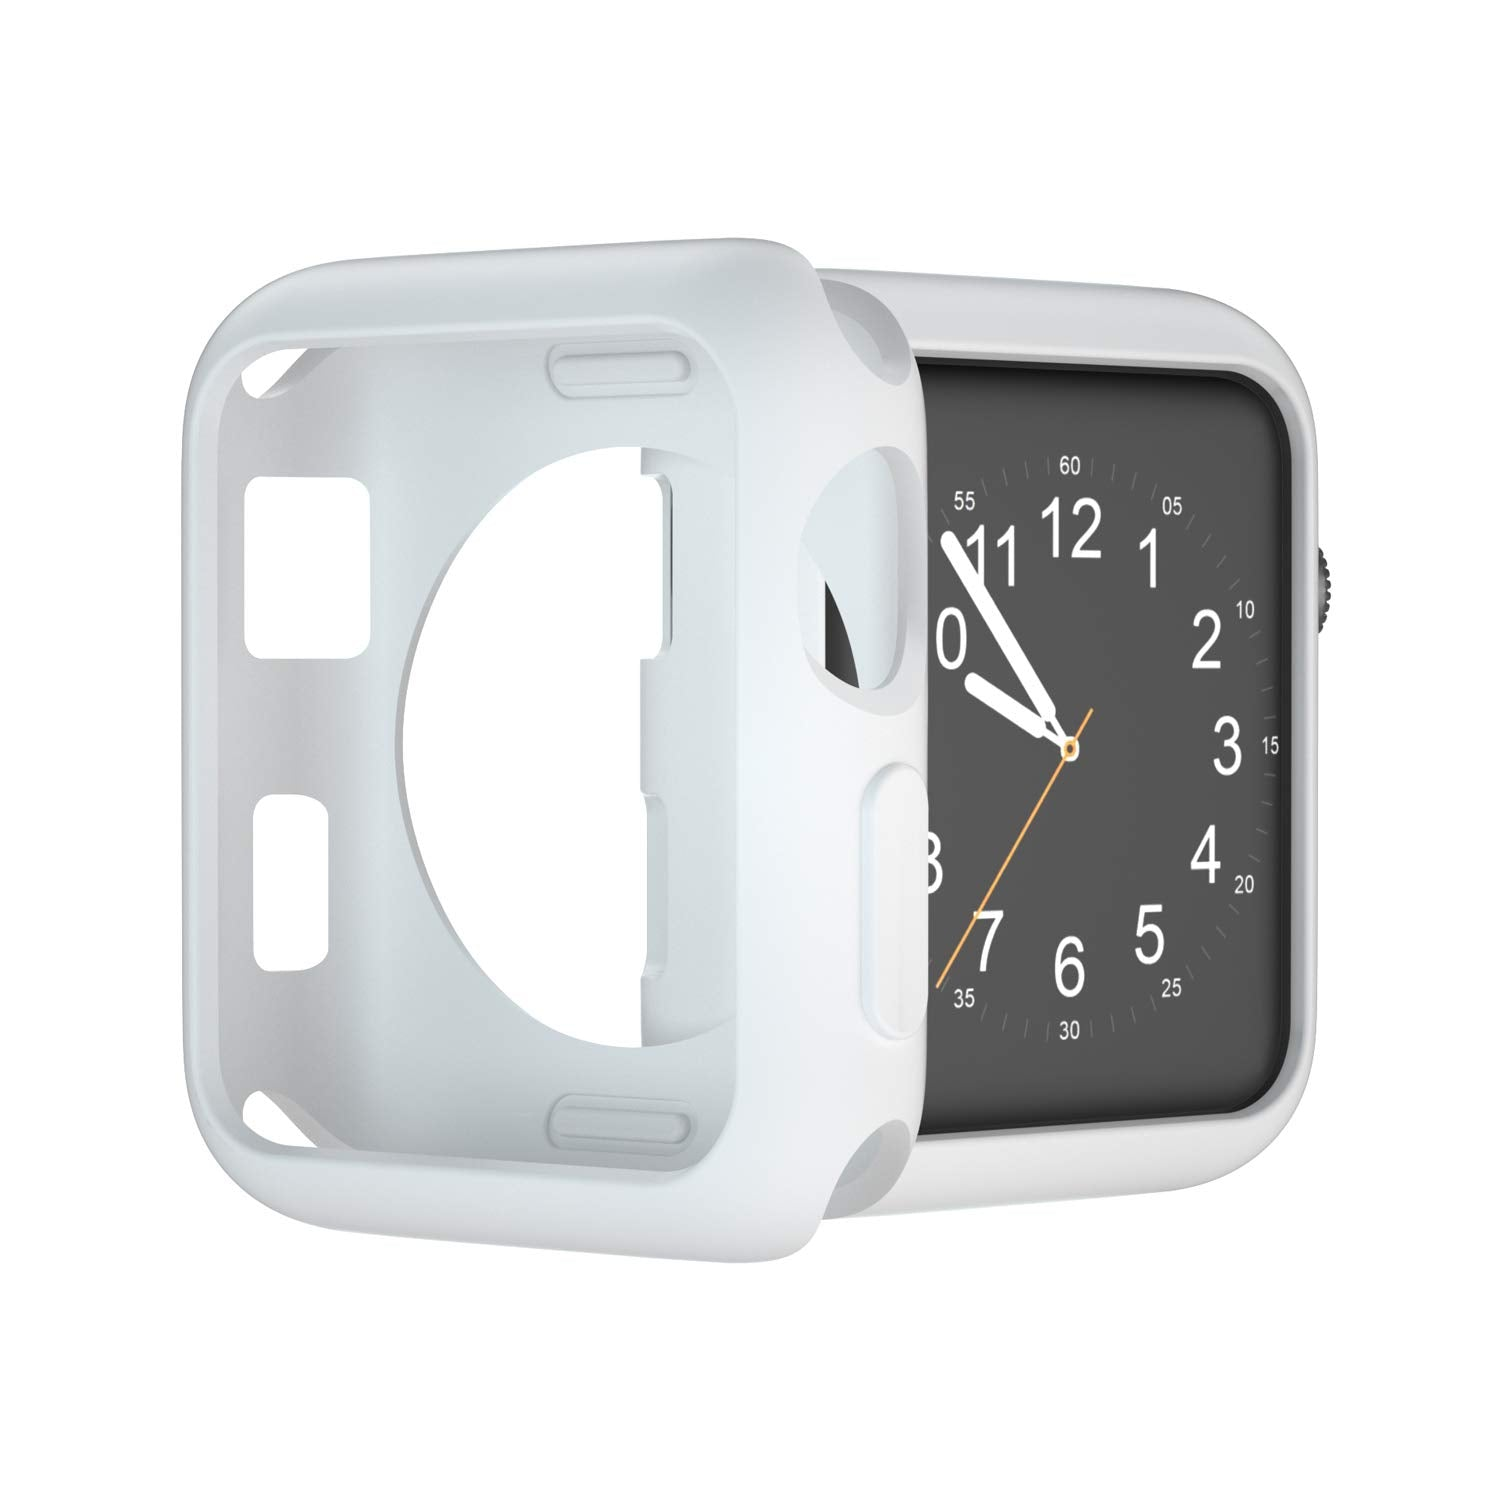 U191U Compatible with Apple Watch Case 38mm 42mm 40mm 44mm, Soft TPU Shockproof and Shatter-Resistant Protective Bumper Cover iwatch Series 5 4 3 2 Case (White, 38mm Series 2/3)